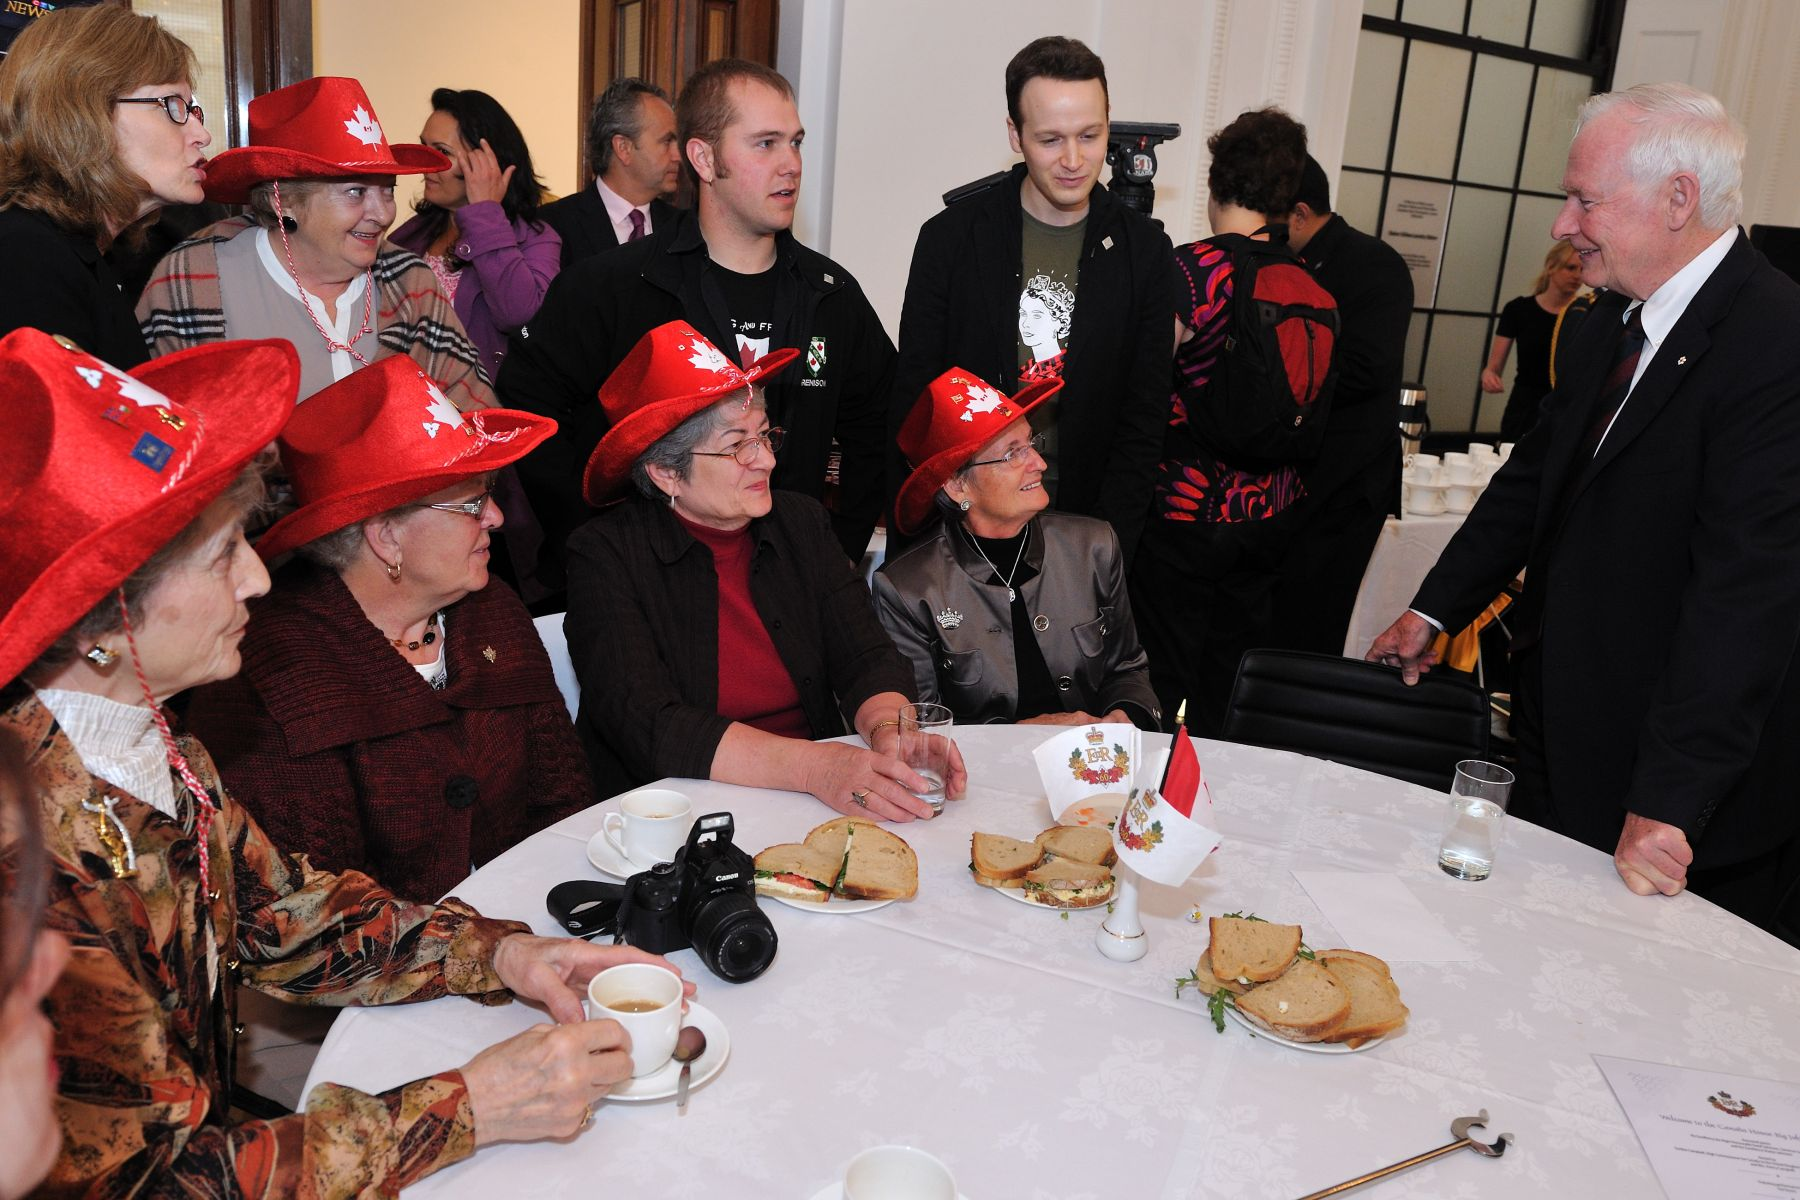 The luncheon took place at Canada House. His Excellency had the chance to mingle with members of the Canadian community of London who attended the event. The ladies here are sisters from Toronto.